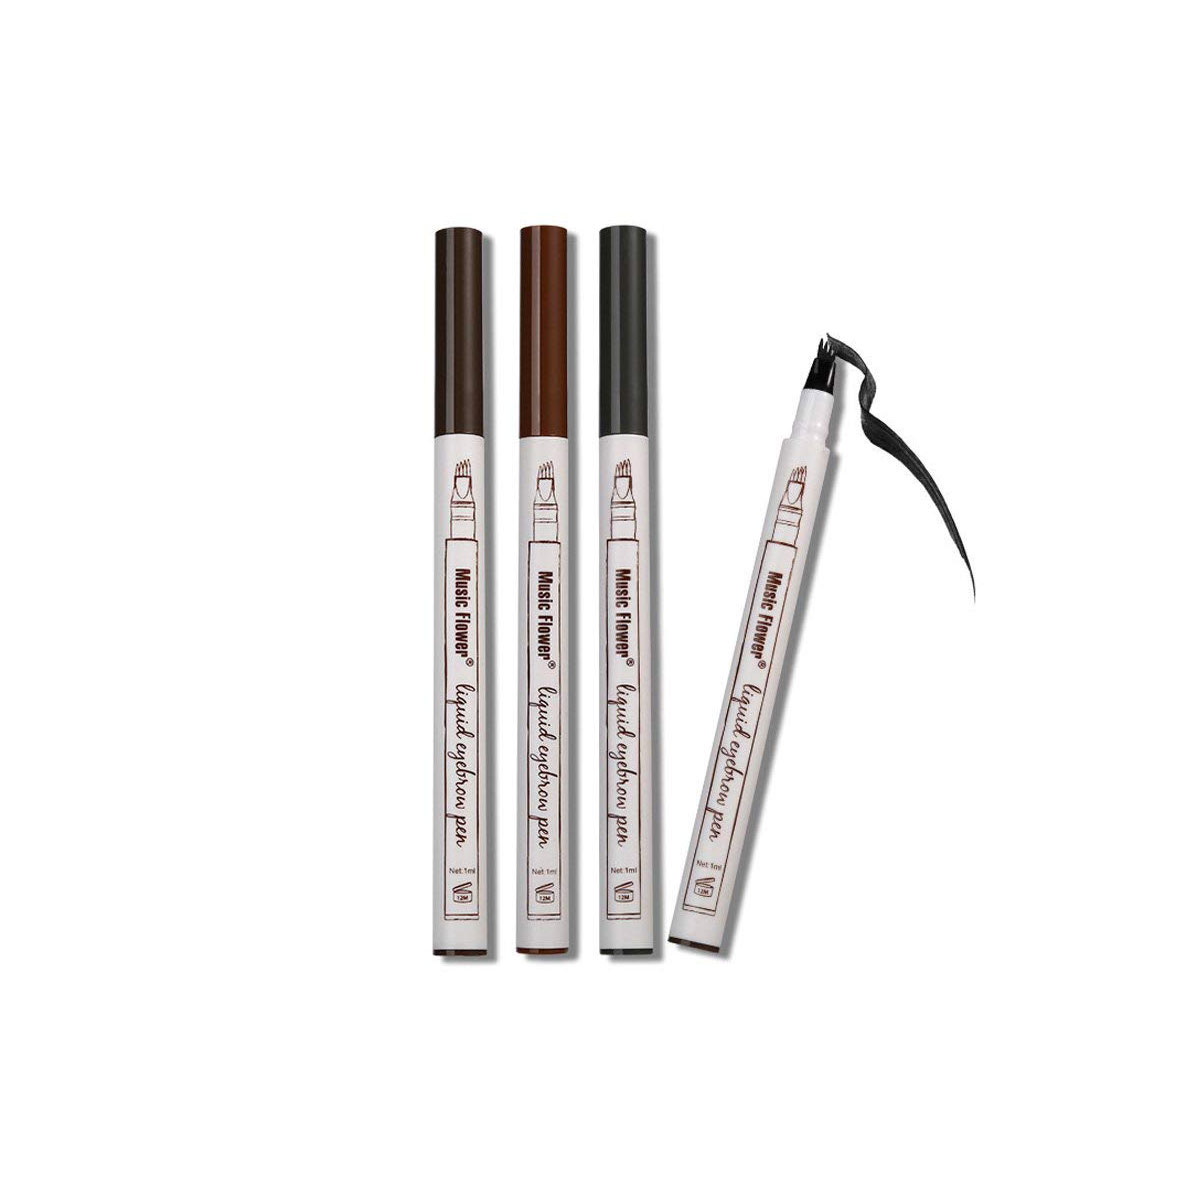 Music Flower Liquid Tattoo Eyebrow Pen